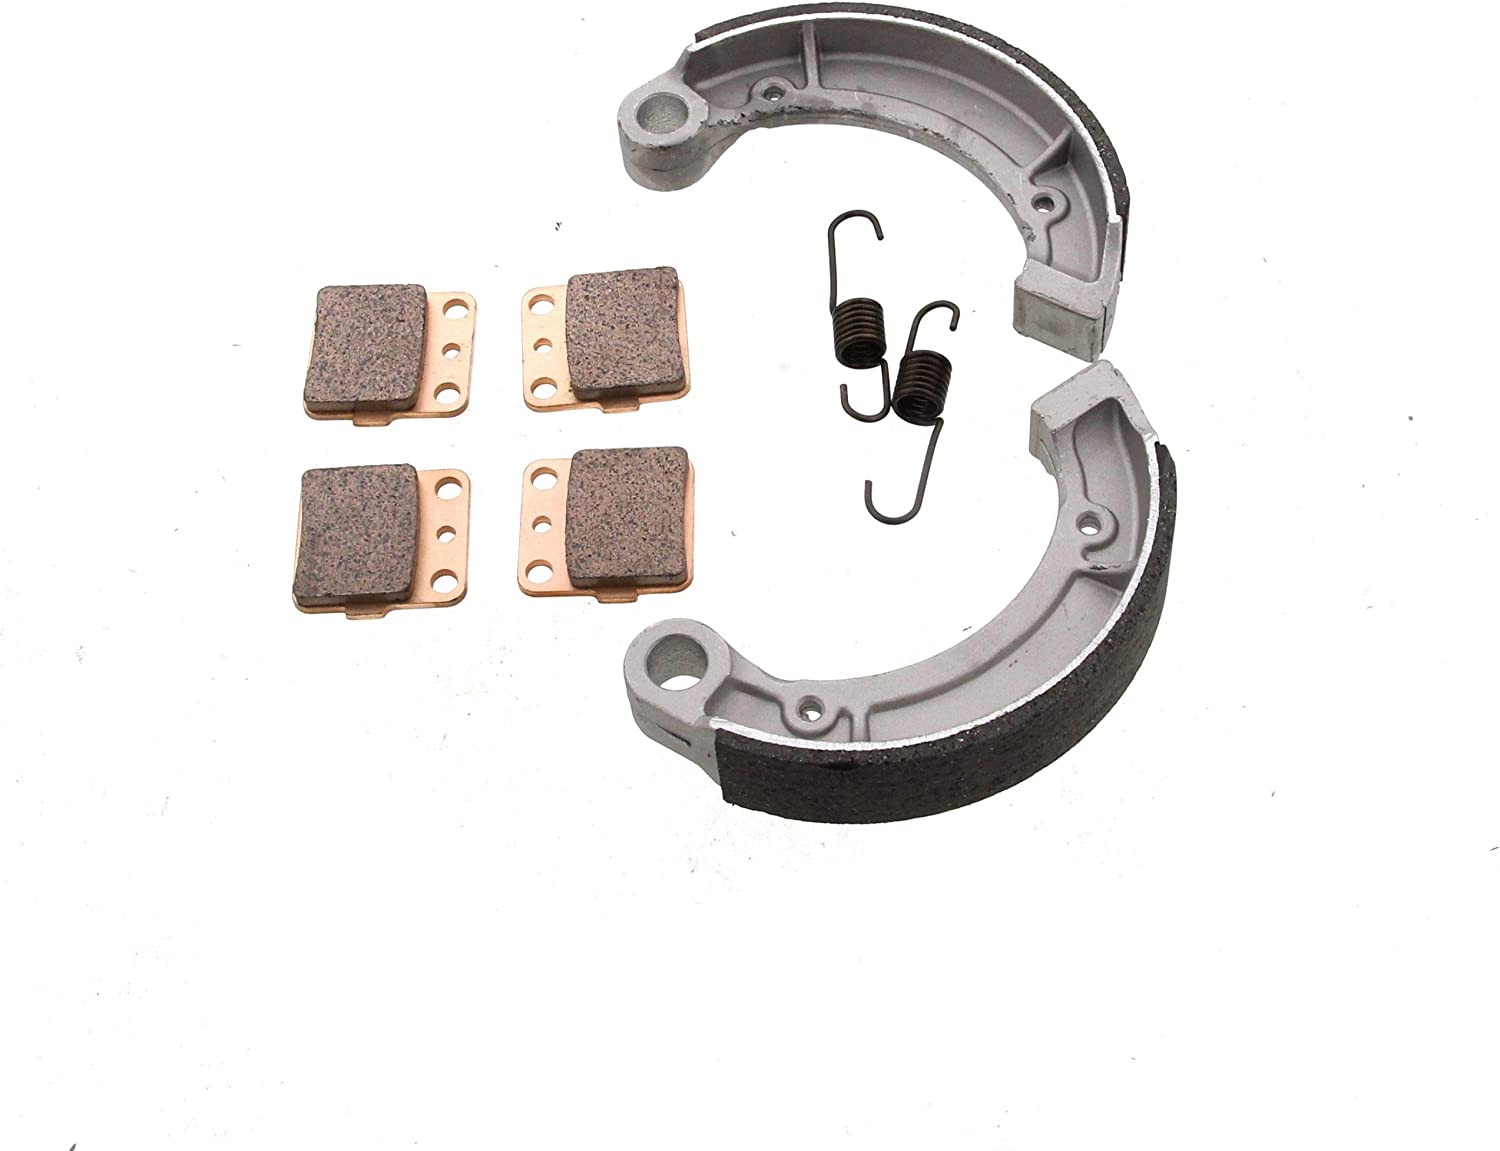 Yamaha 350 GRIZZLY YFM350 2X4 Front Brake Pads and Rear Brake Shoes